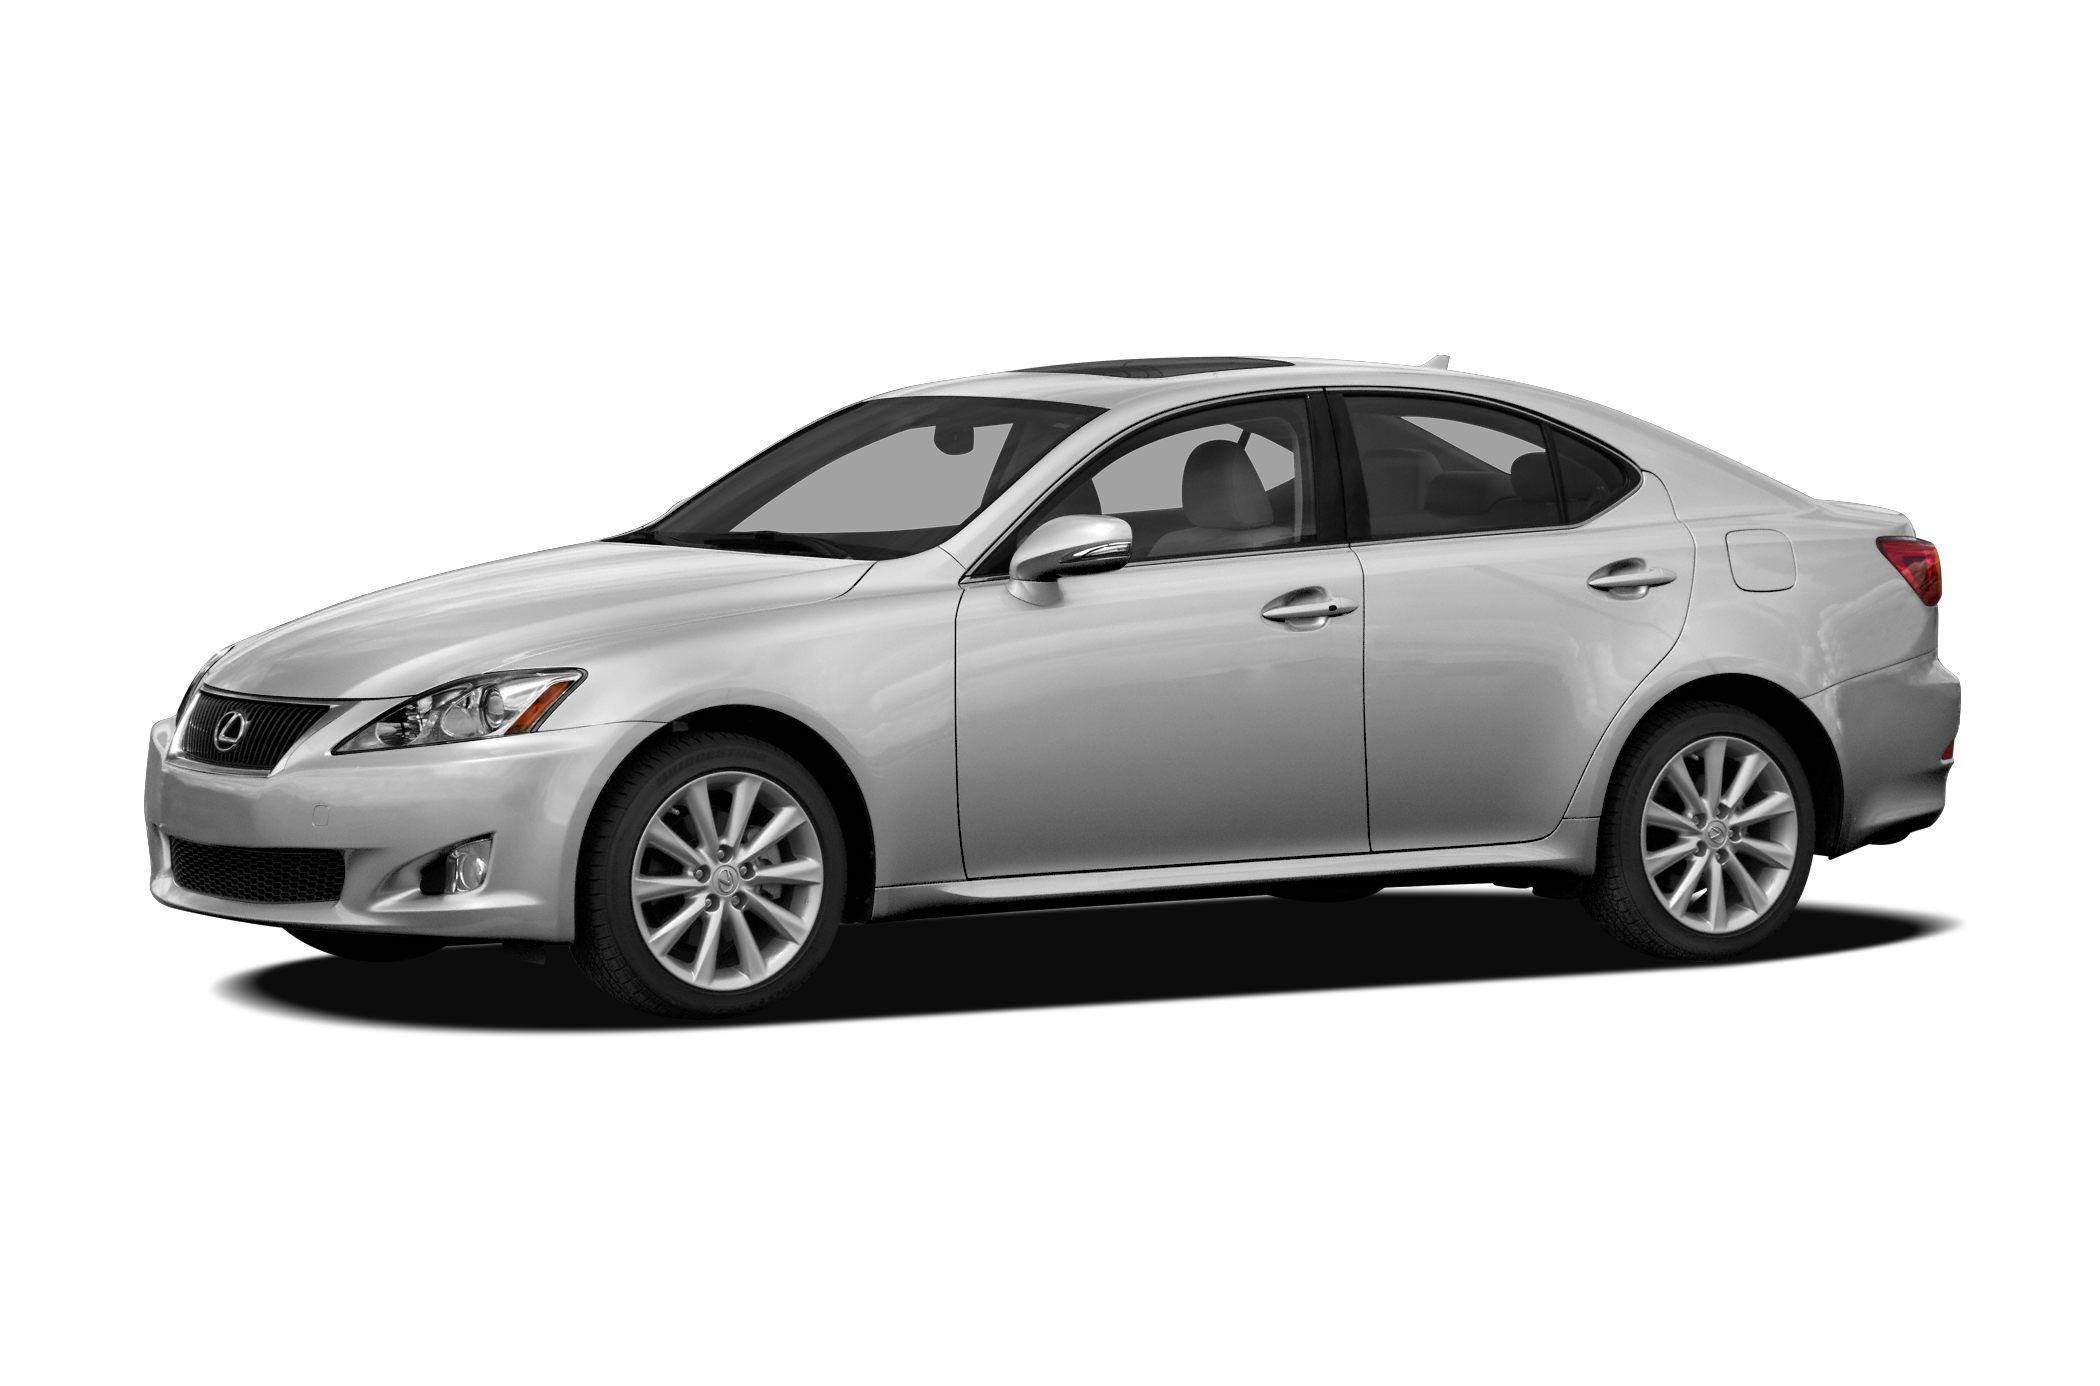 2011 Lexus IS 250 Base Sedan for sale in Orlando for $22,888 with 44,142 miles